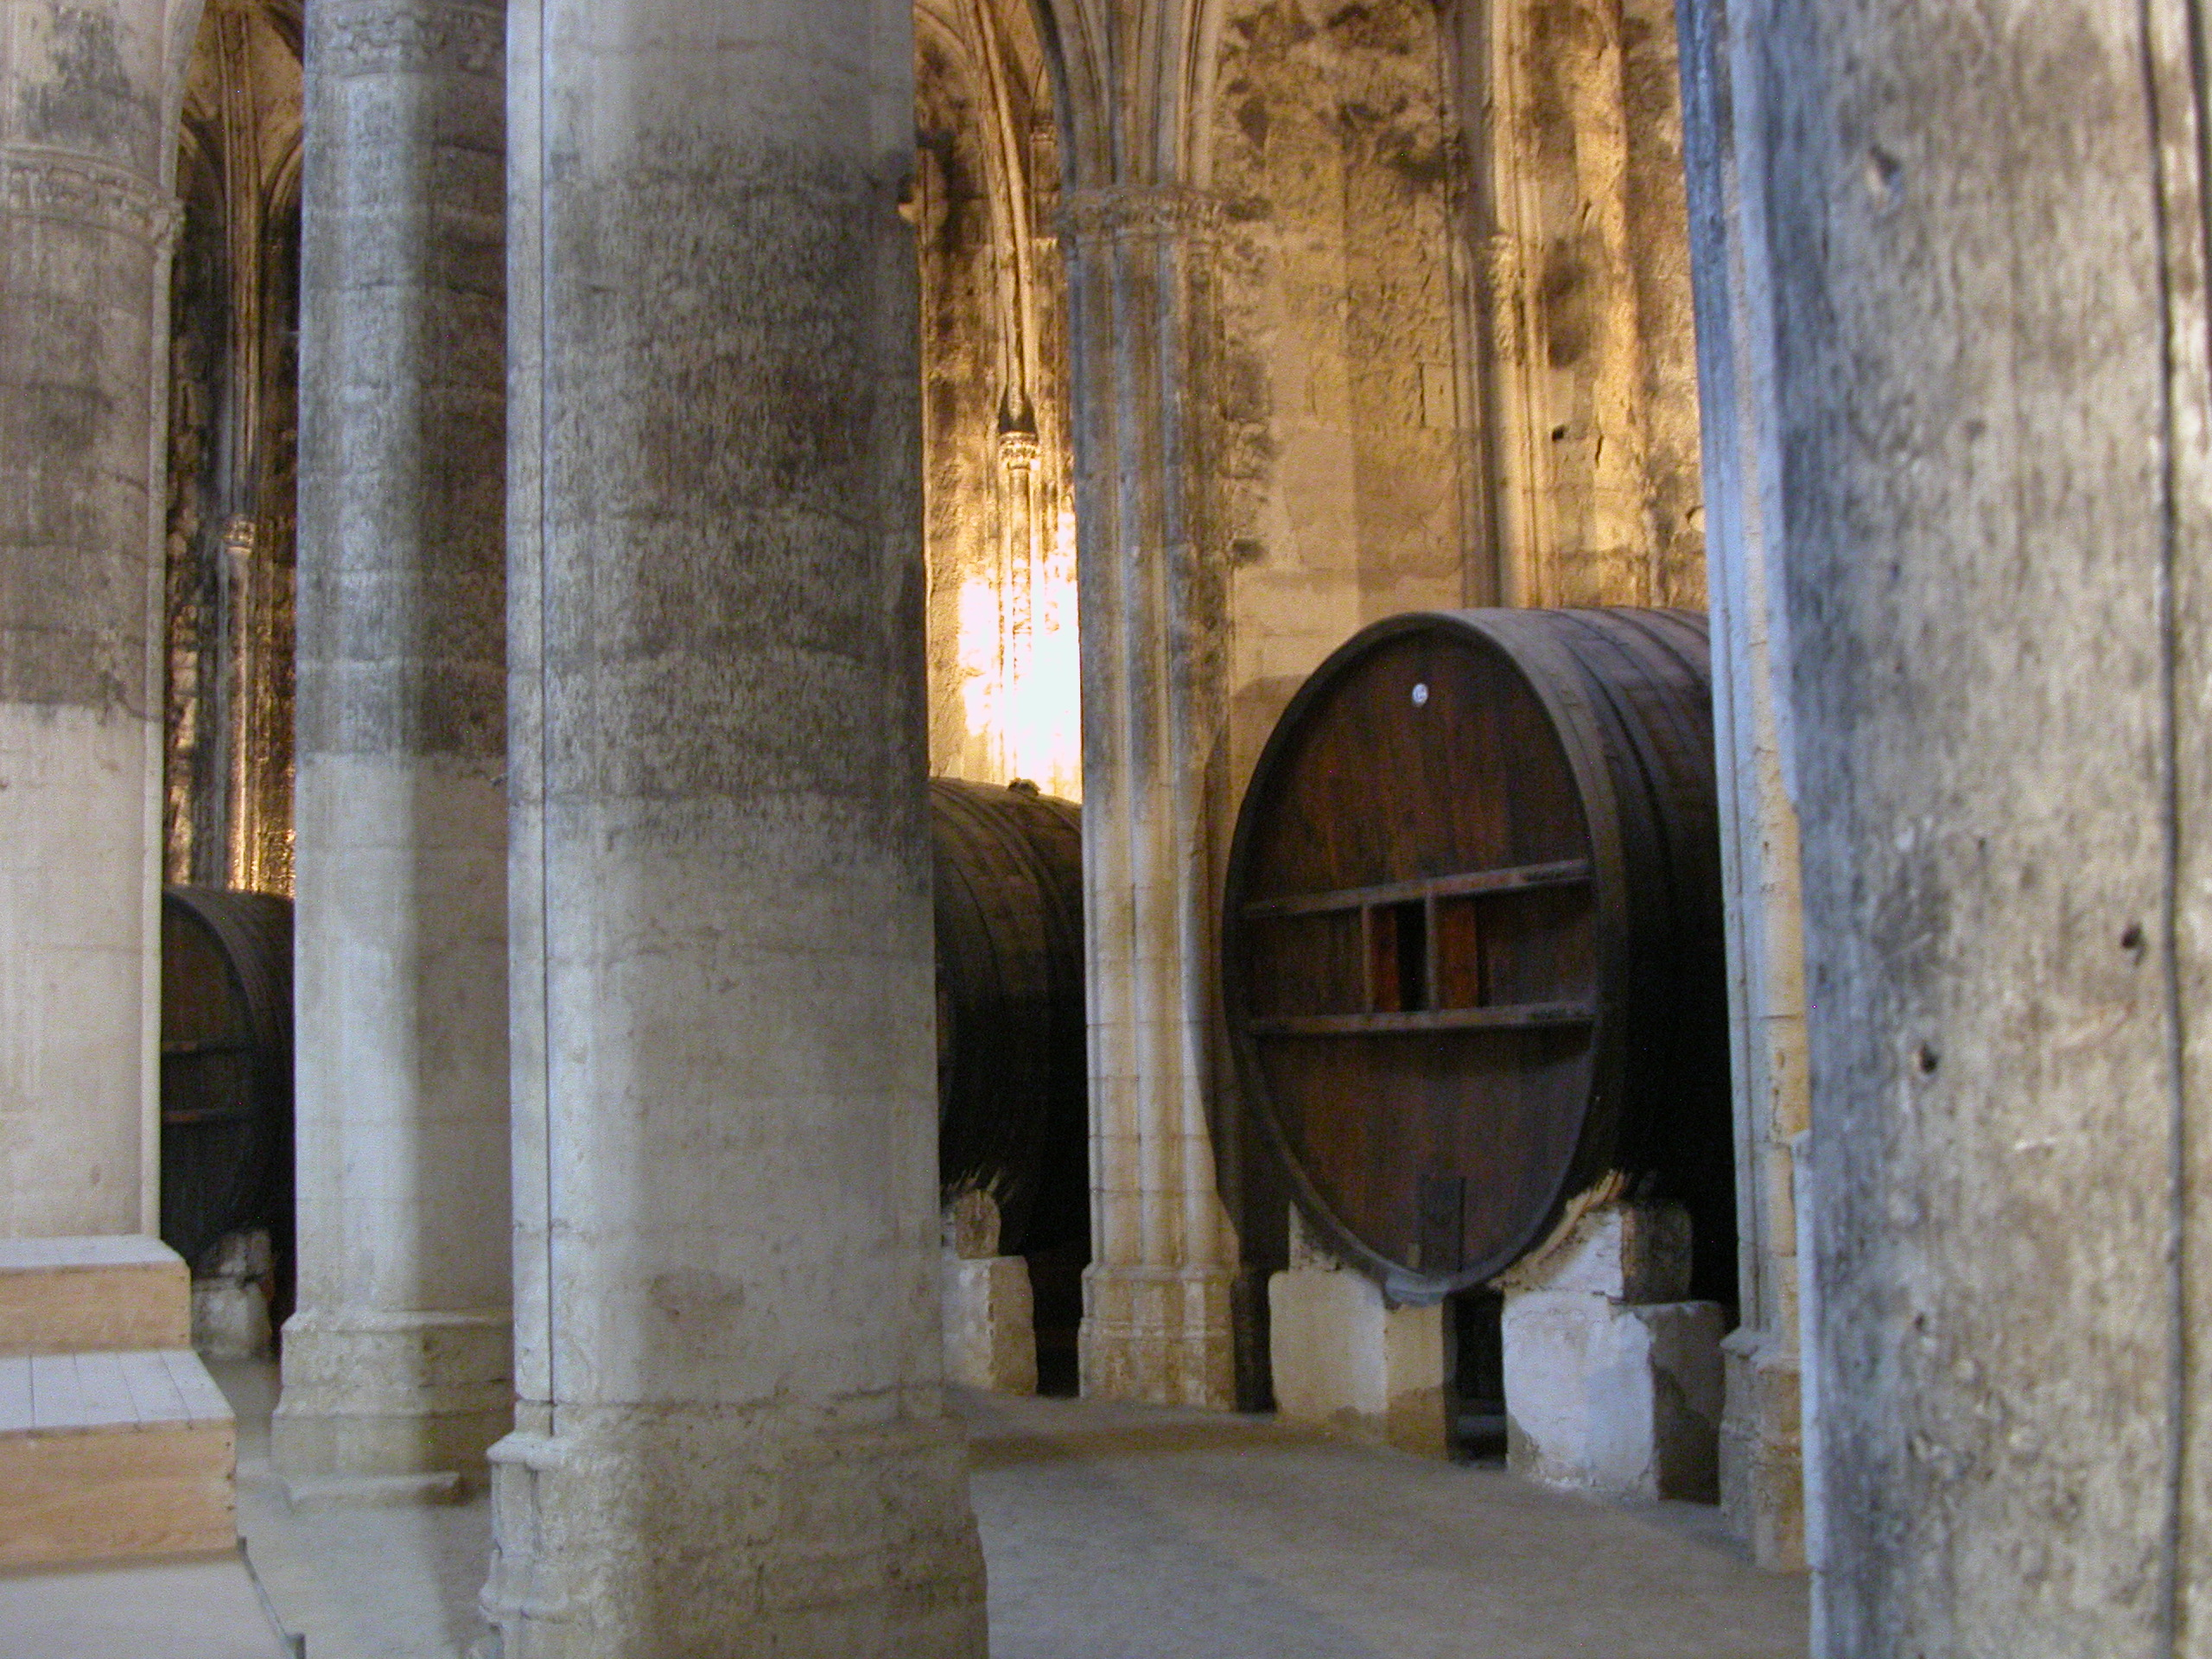 http://upload.wikimedia.org/wikipedia/commons/2/28/Valmagne_abbaye_eglise.jpg